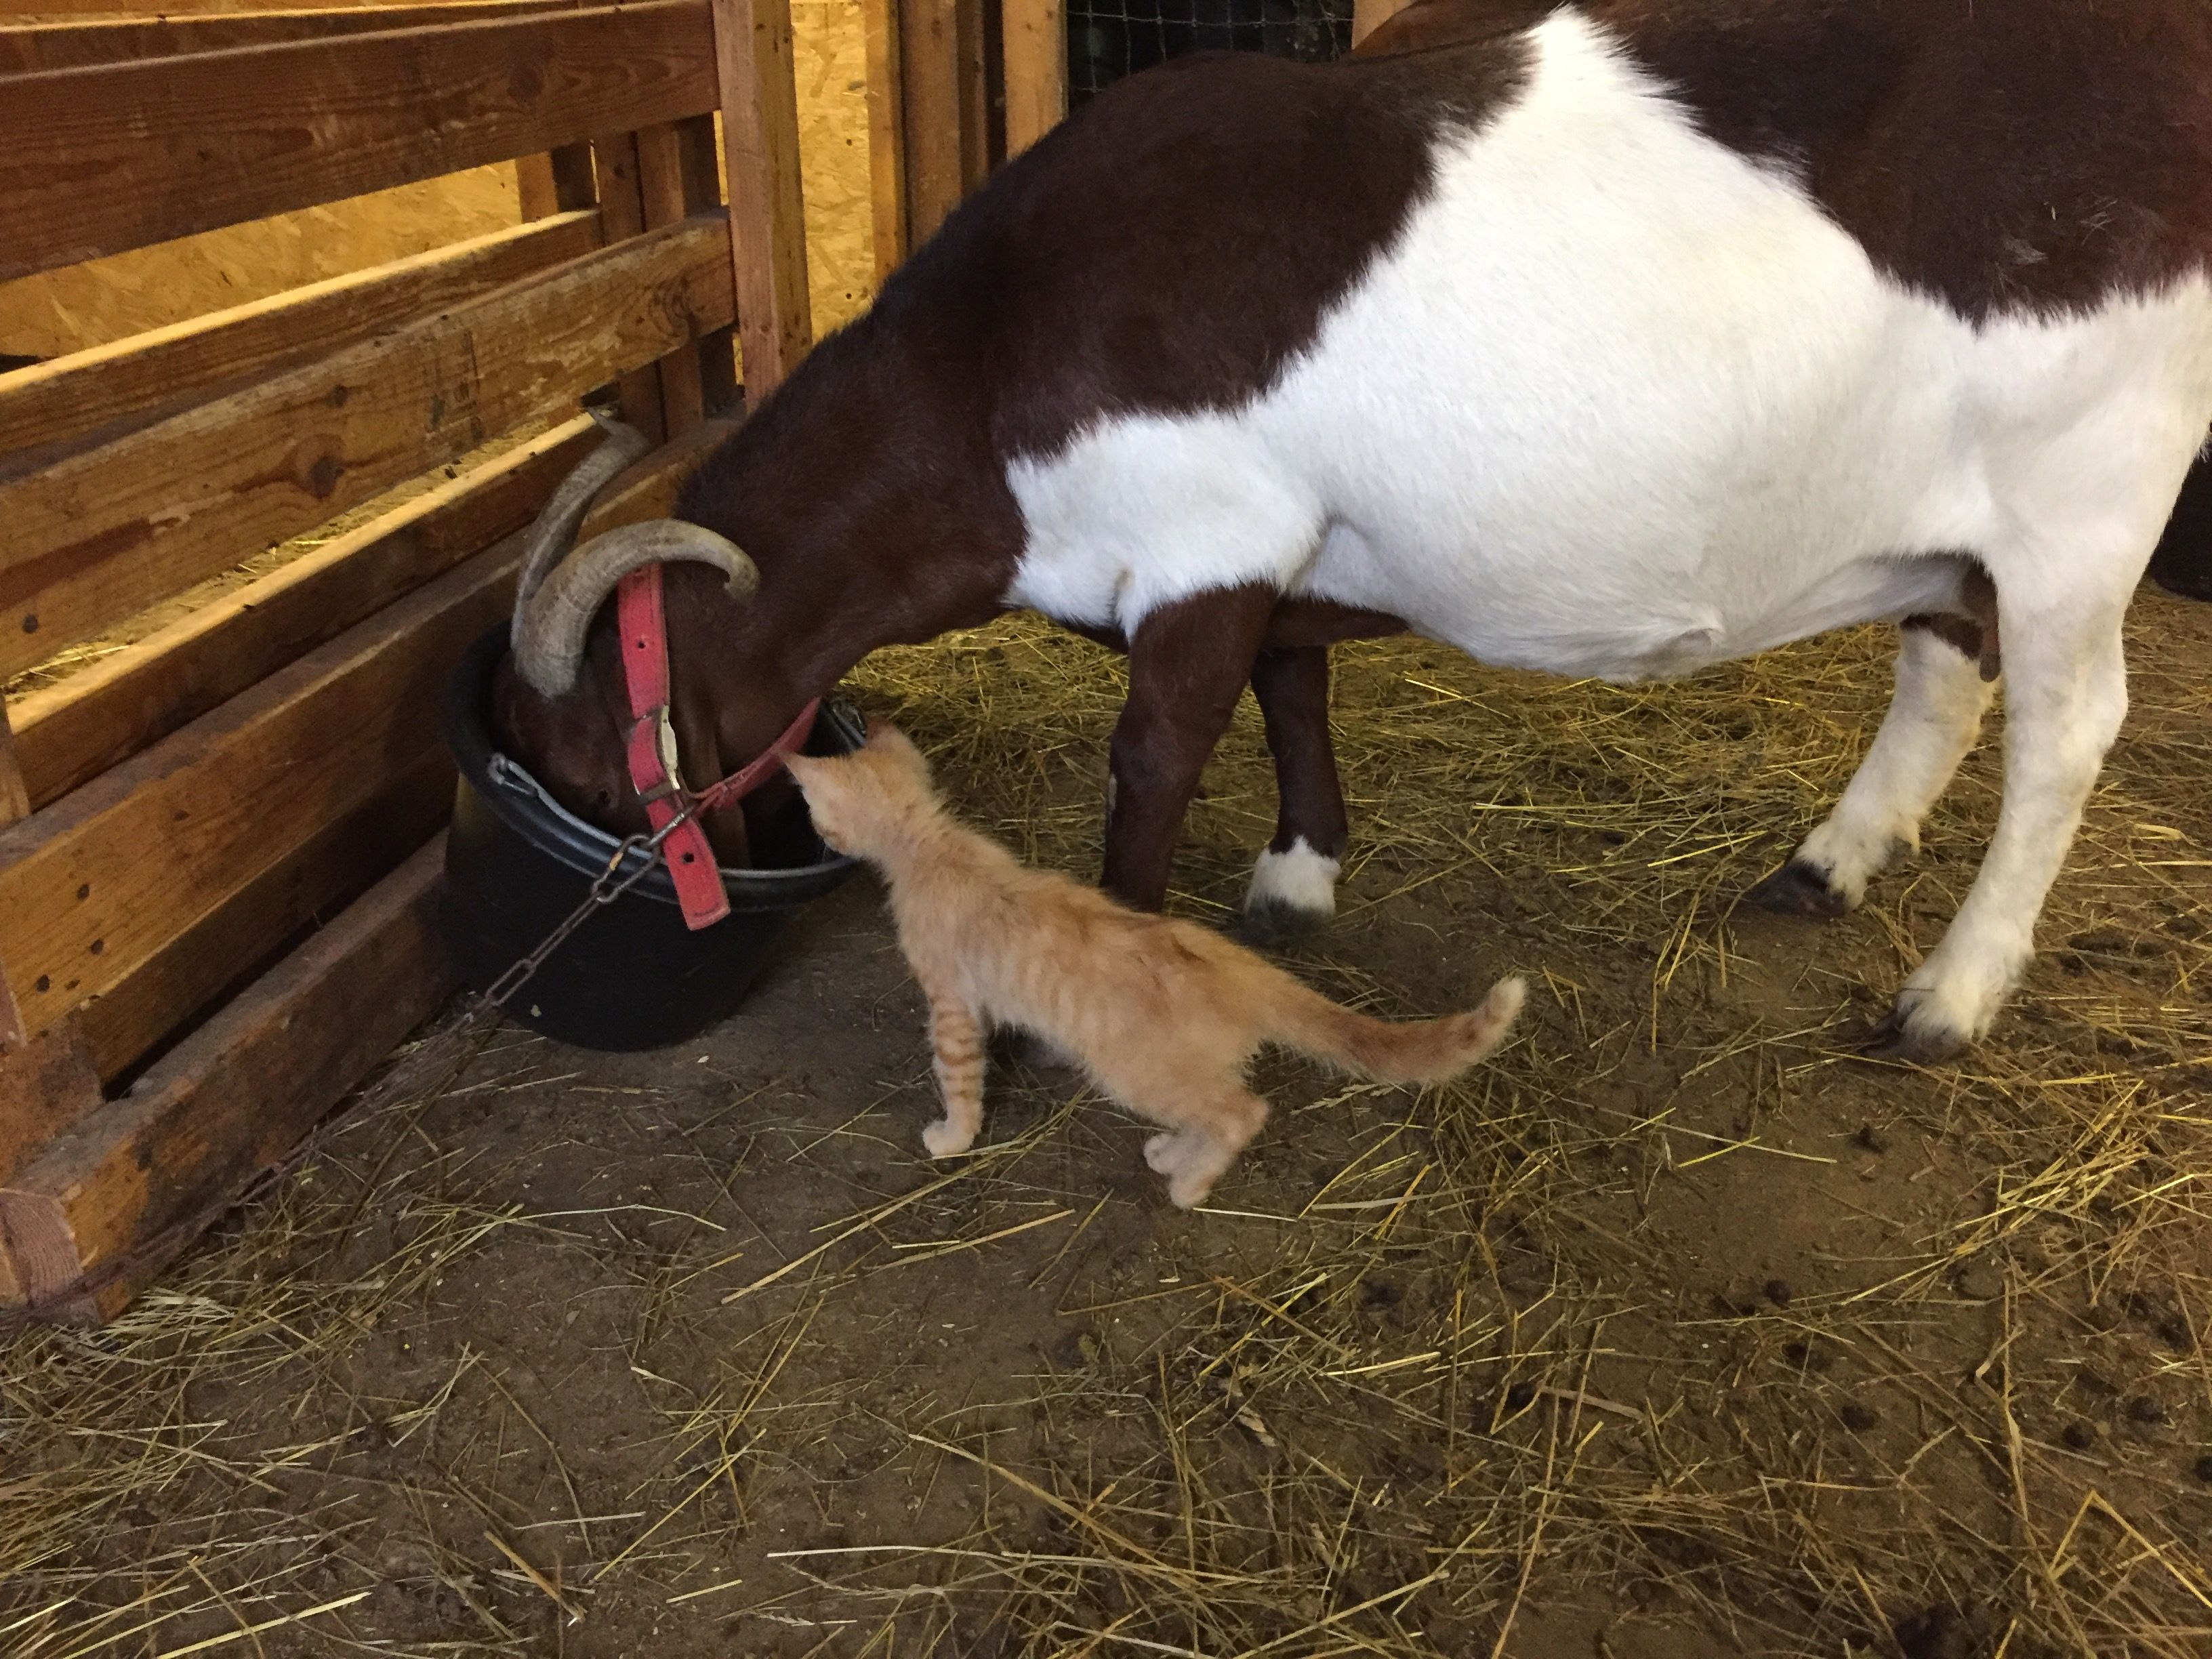 This Morning I Had Big Help Feeding Goats Our Kitty Was Making Sure They Eat All Their Feed Morning Kitty Kitten Goat Cat Goats Cat Day Feeding Goats